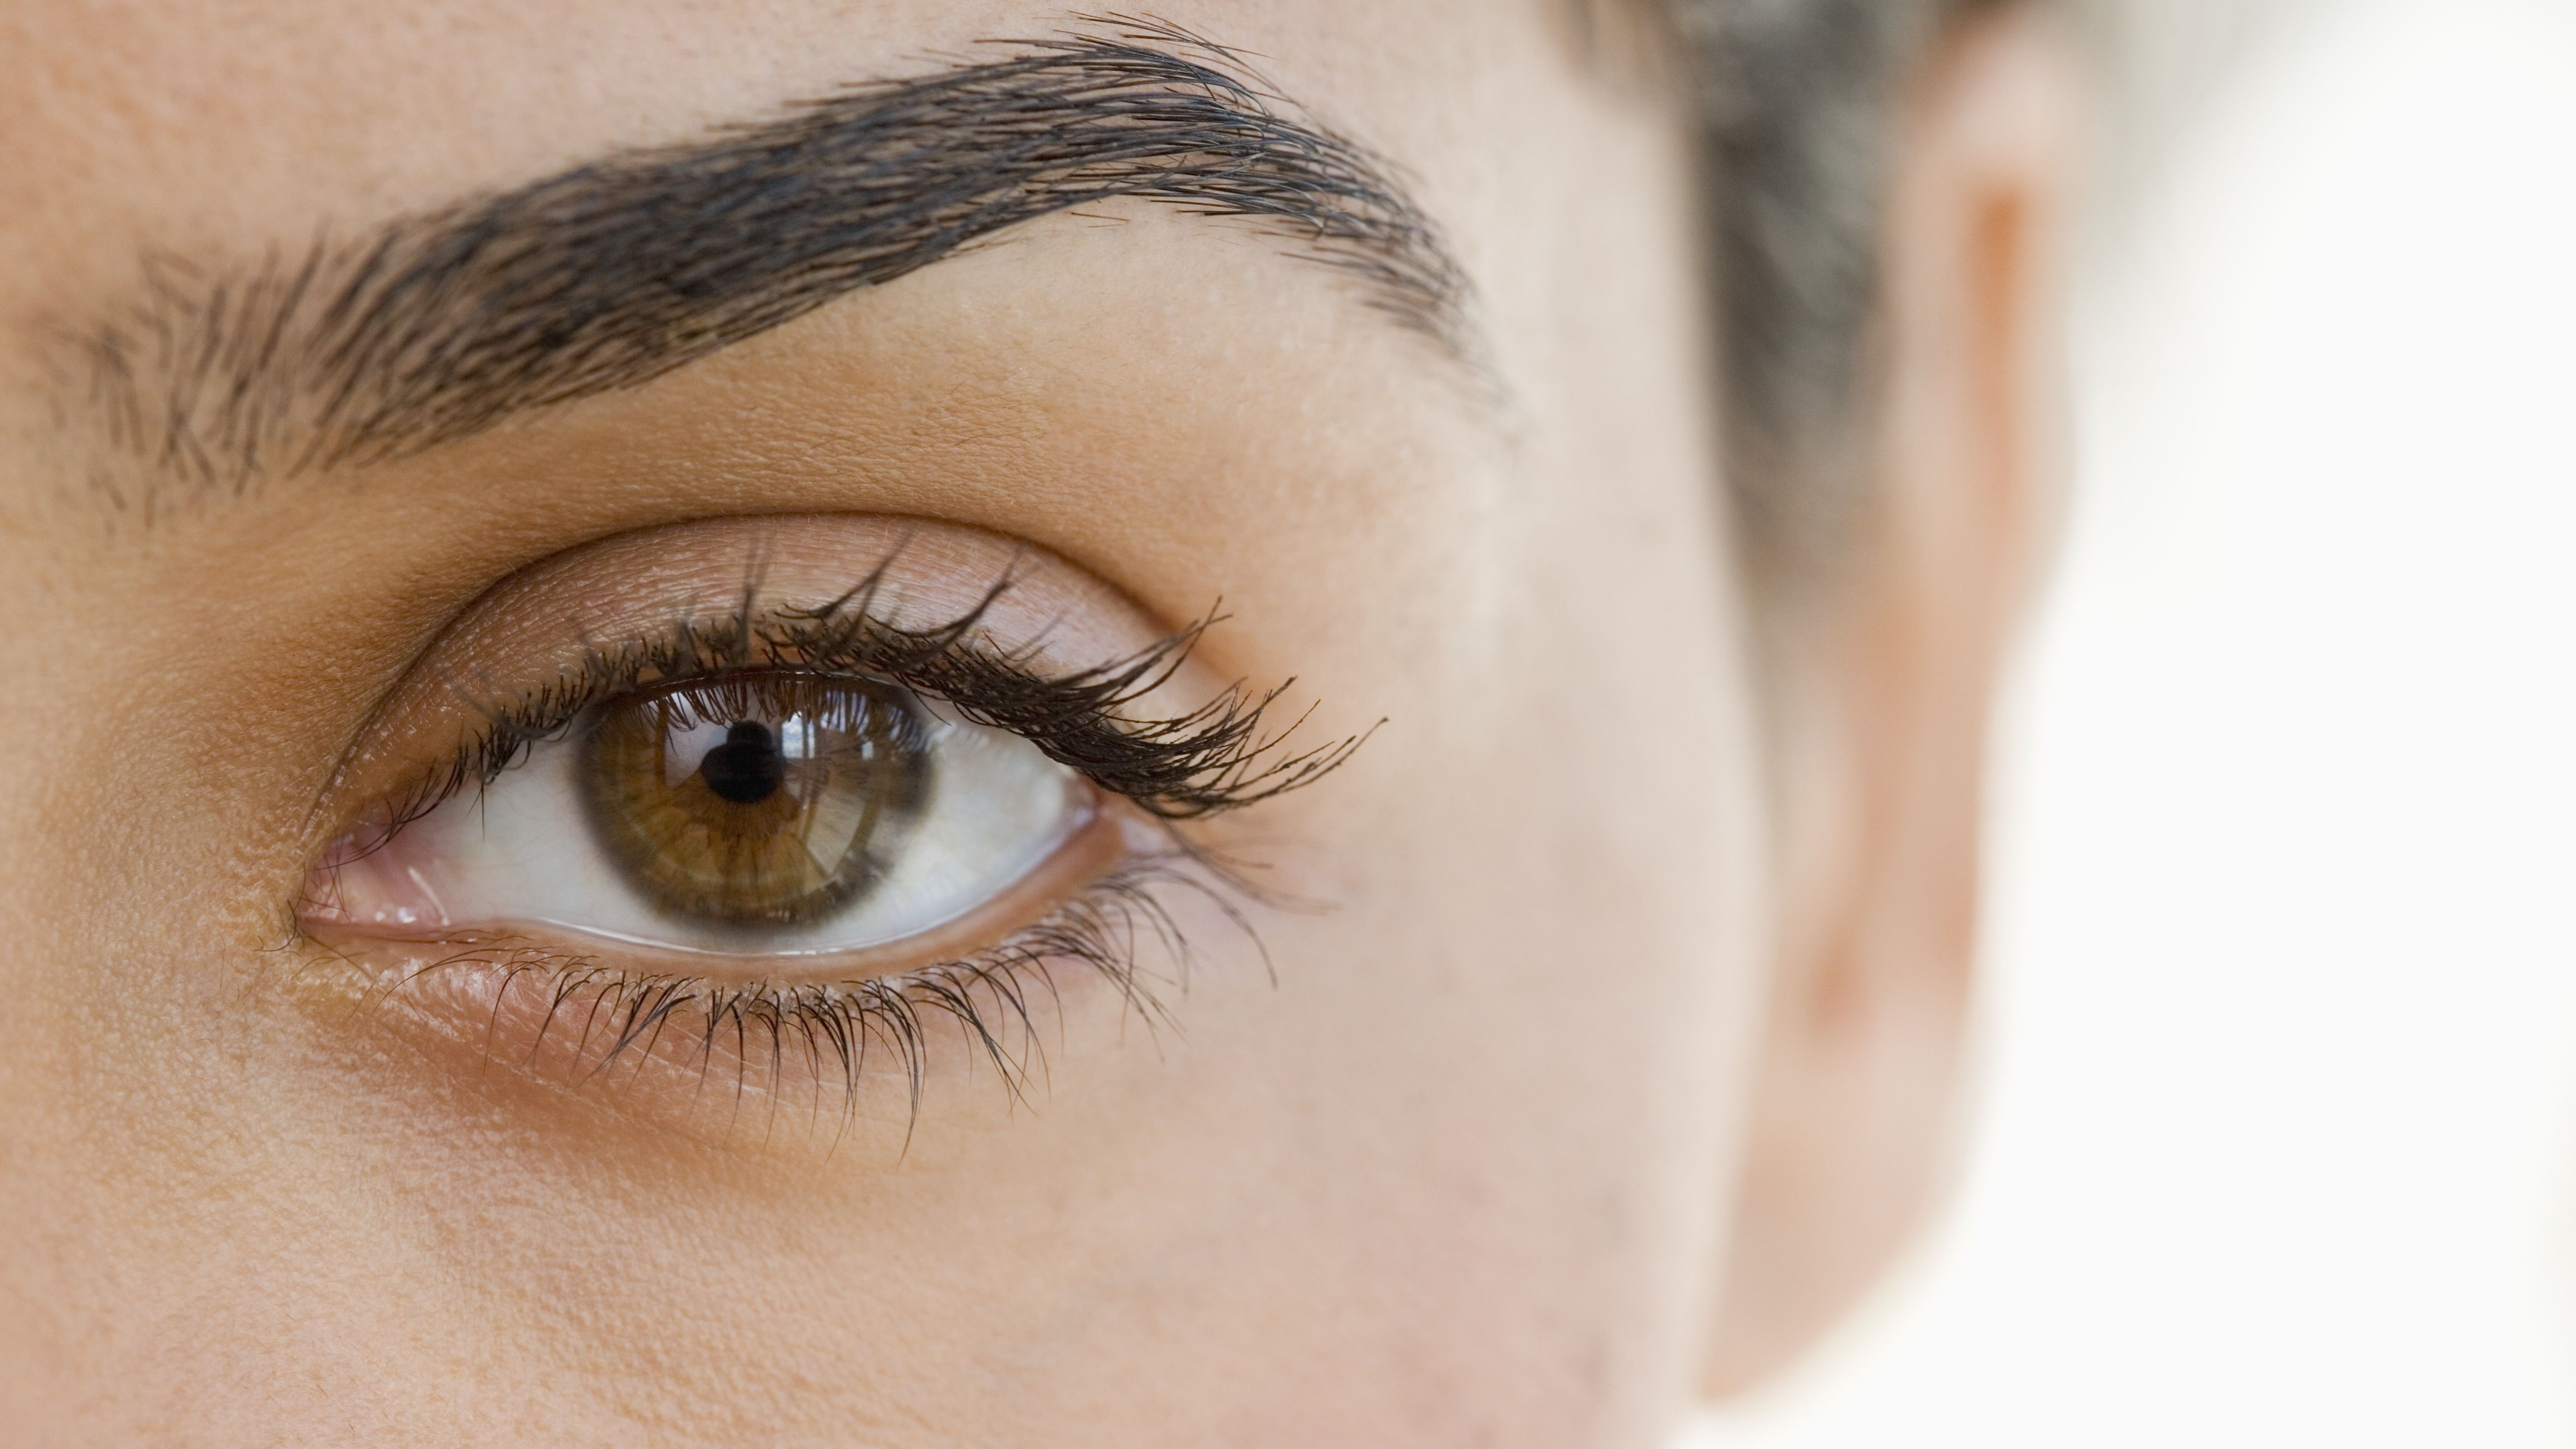 extreme-close-up-of-woman-s-eye-73231926-5afe152243a103003735aa7f